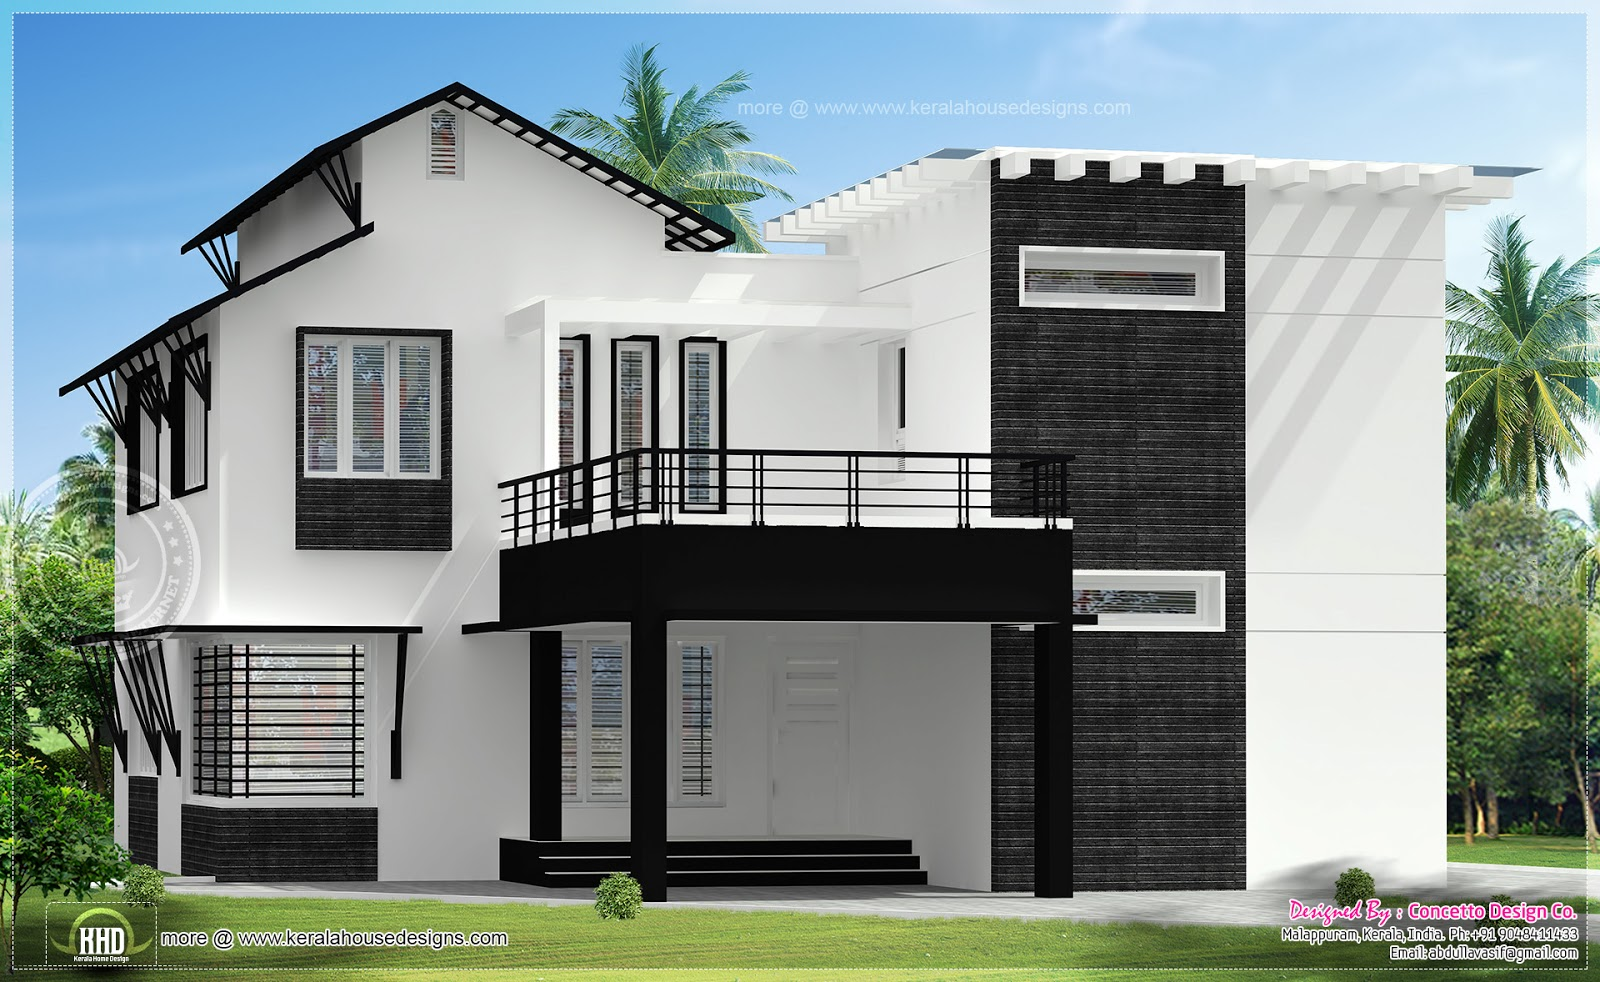 House Elevation Of 5 Different House Exteriors By Concetto Design Home